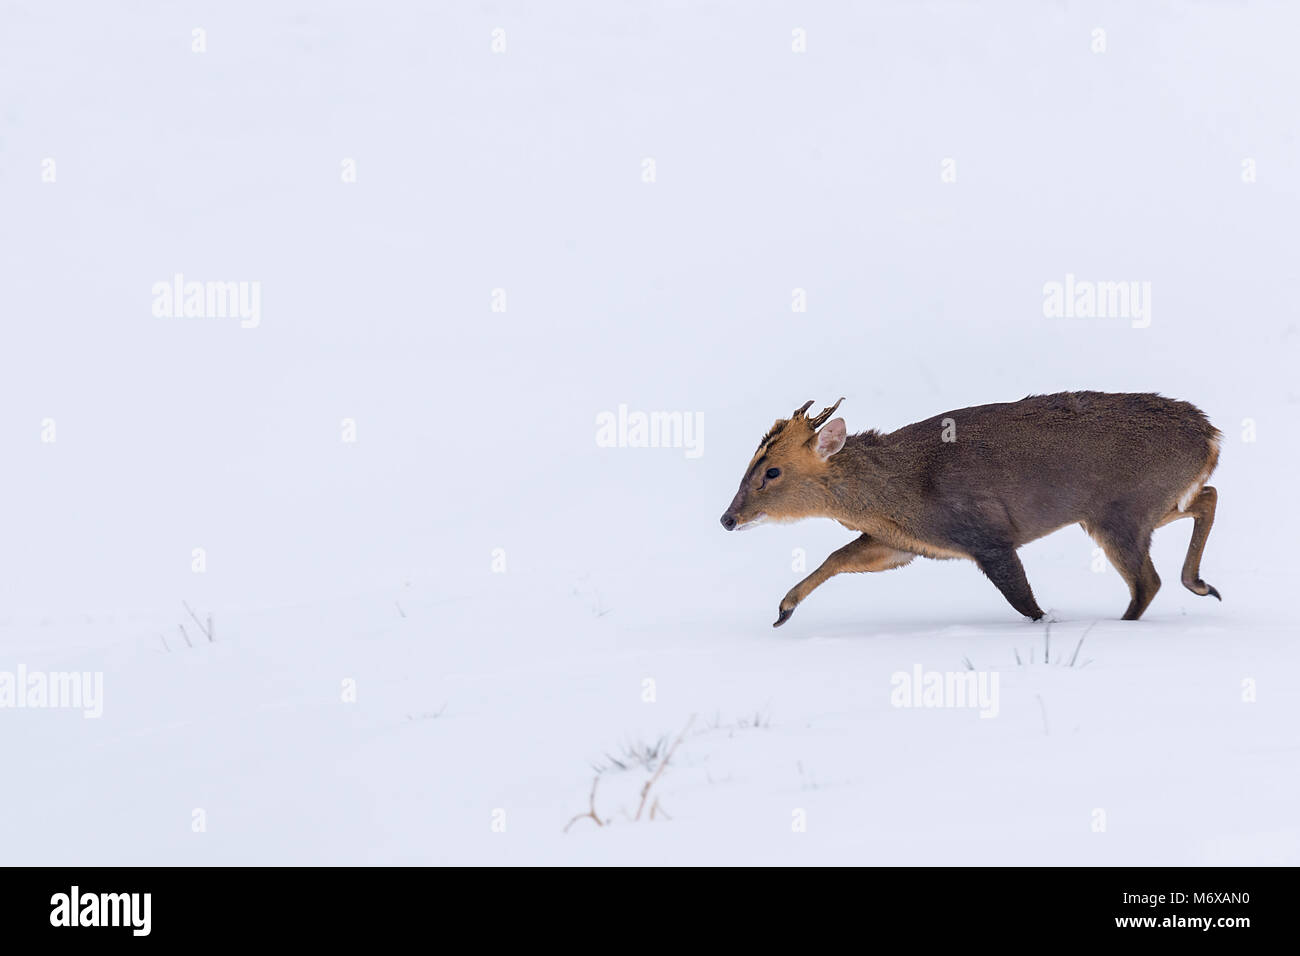 A majestic buck Muntjac making his way across a heavily snow covered field. - Stock Image